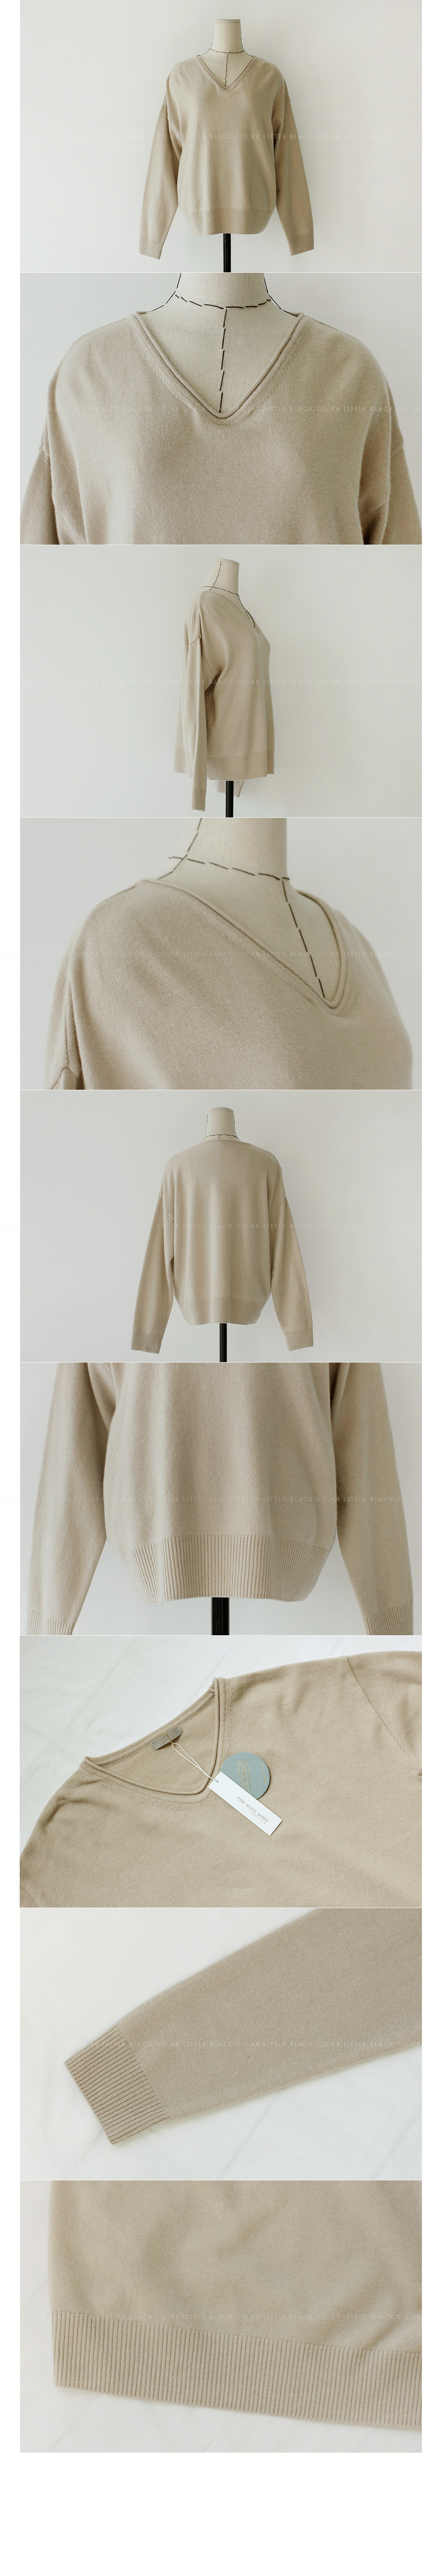 Drop Shoulder Rib Trim Knit Sweater|